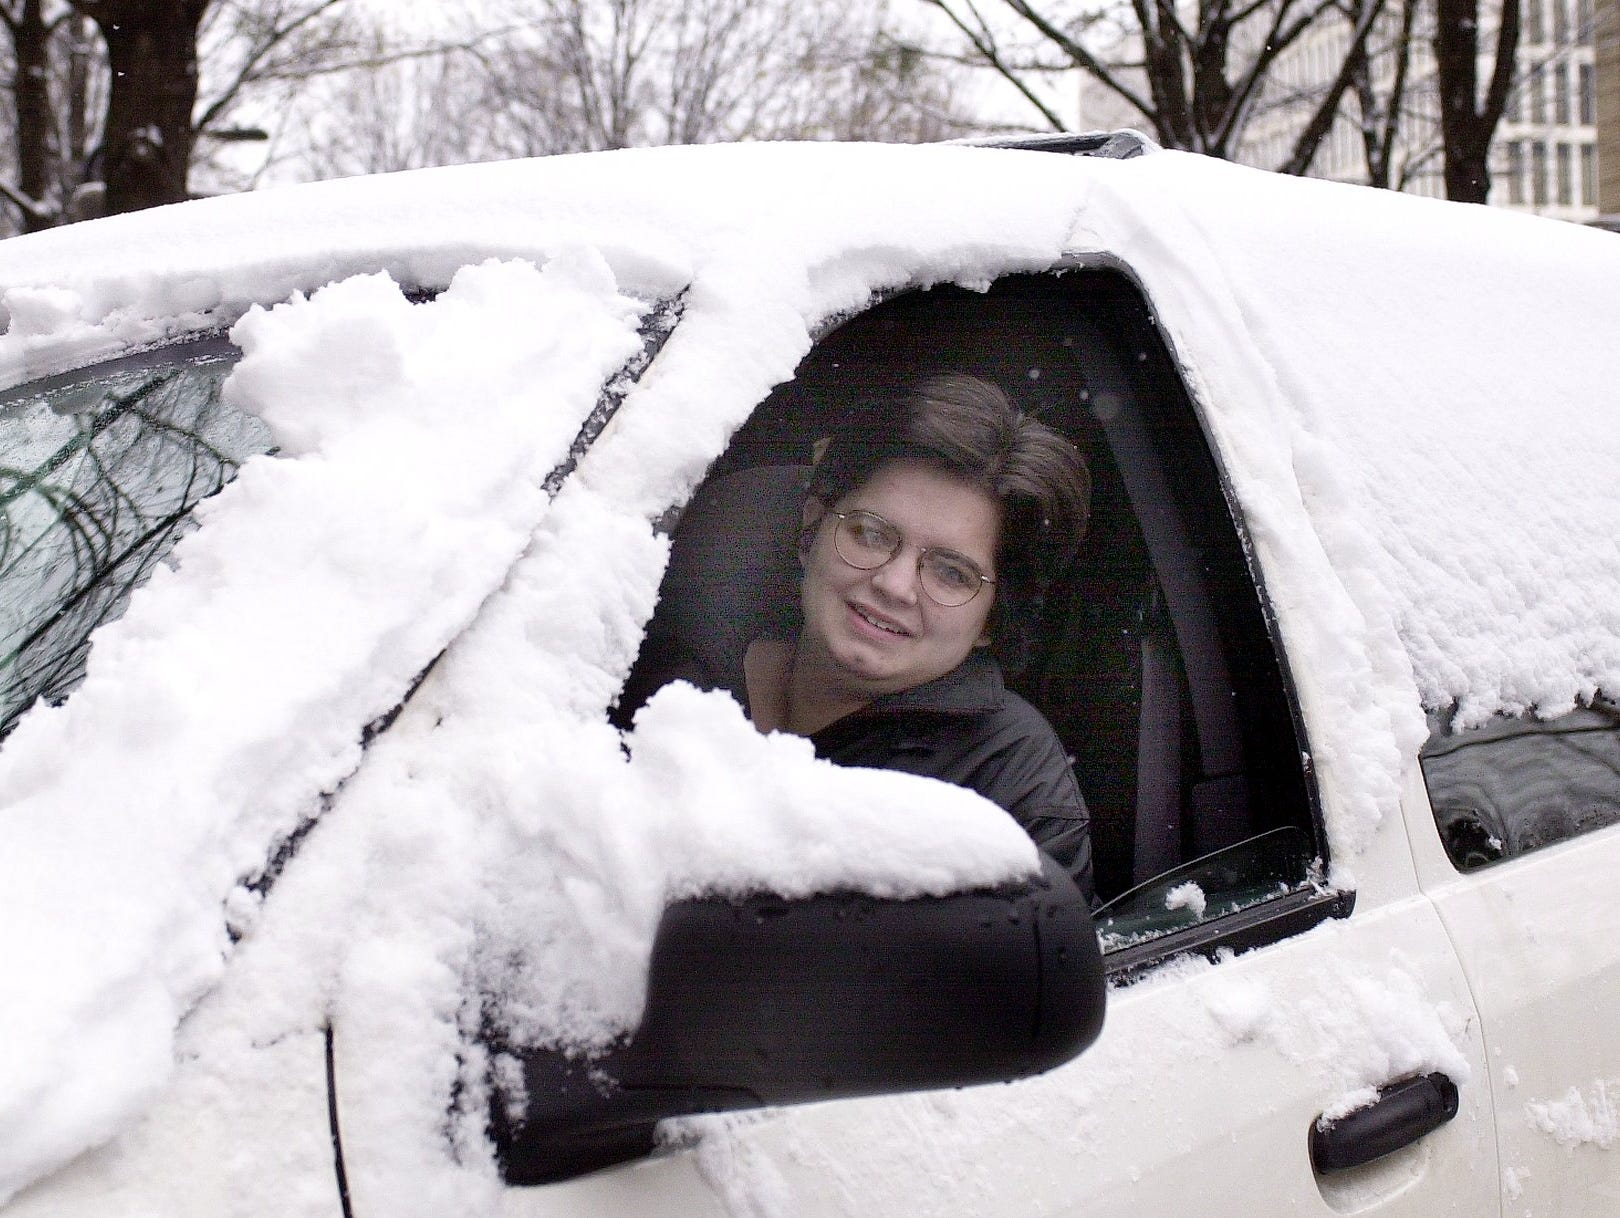 Anna Greeg gets ready to head home after clearing snow from her vehicle parked on Main St. January 3, 2002.